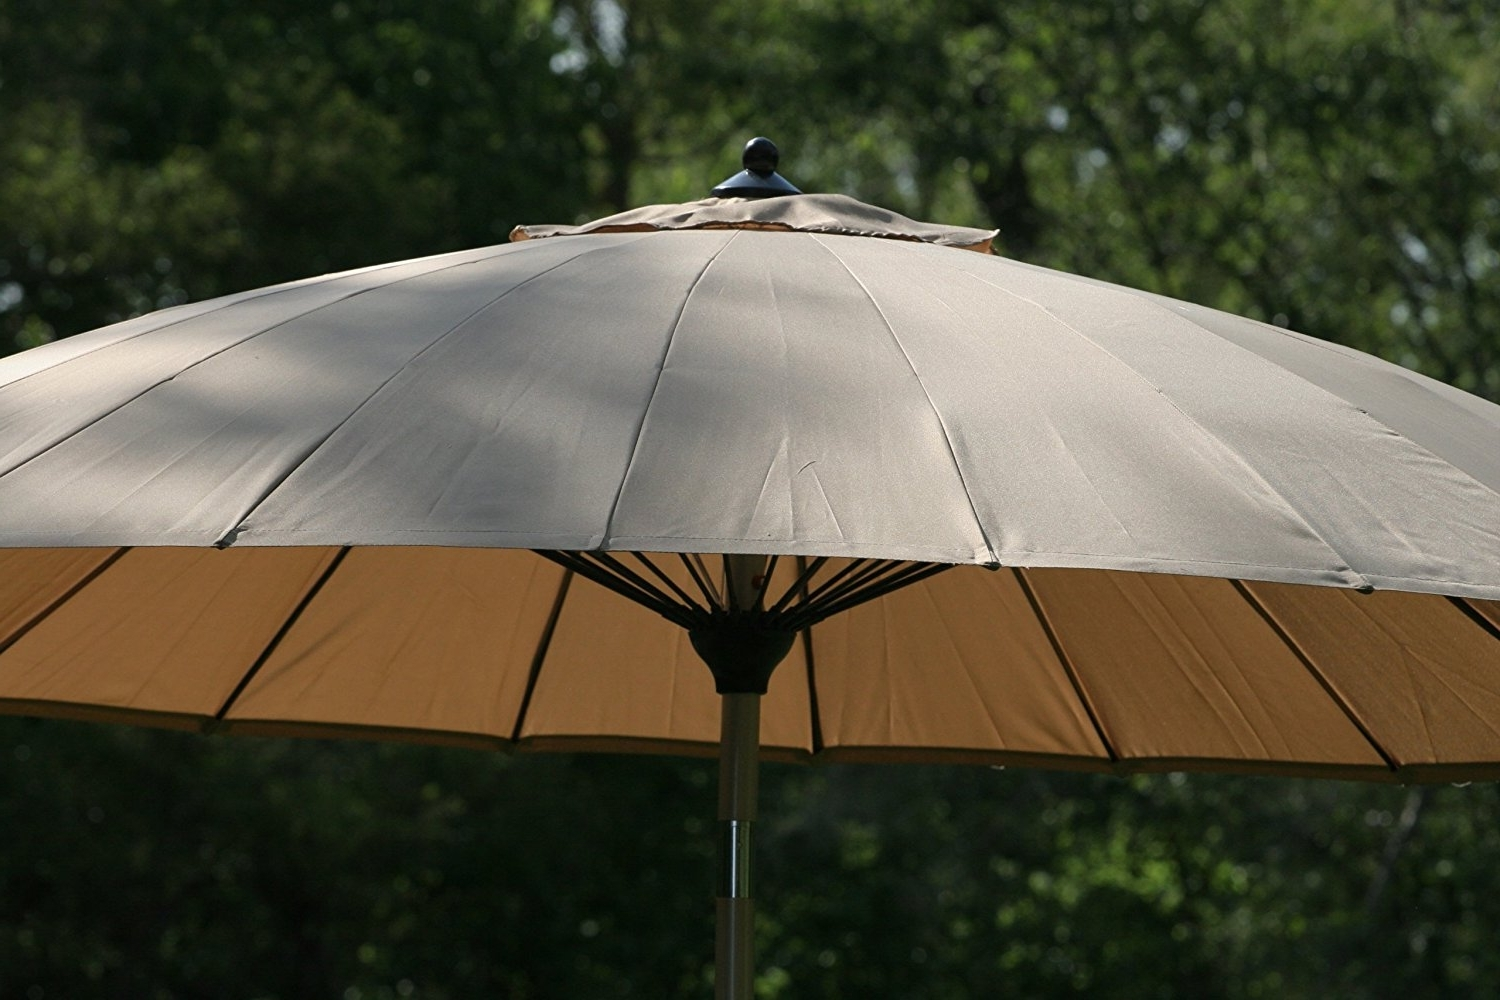 Wind Resistant Patio Umbrellas Intended For Current Wind Resistant Patio Umbrella F68X In Wow Small Home Decoration (View 18 of 20)